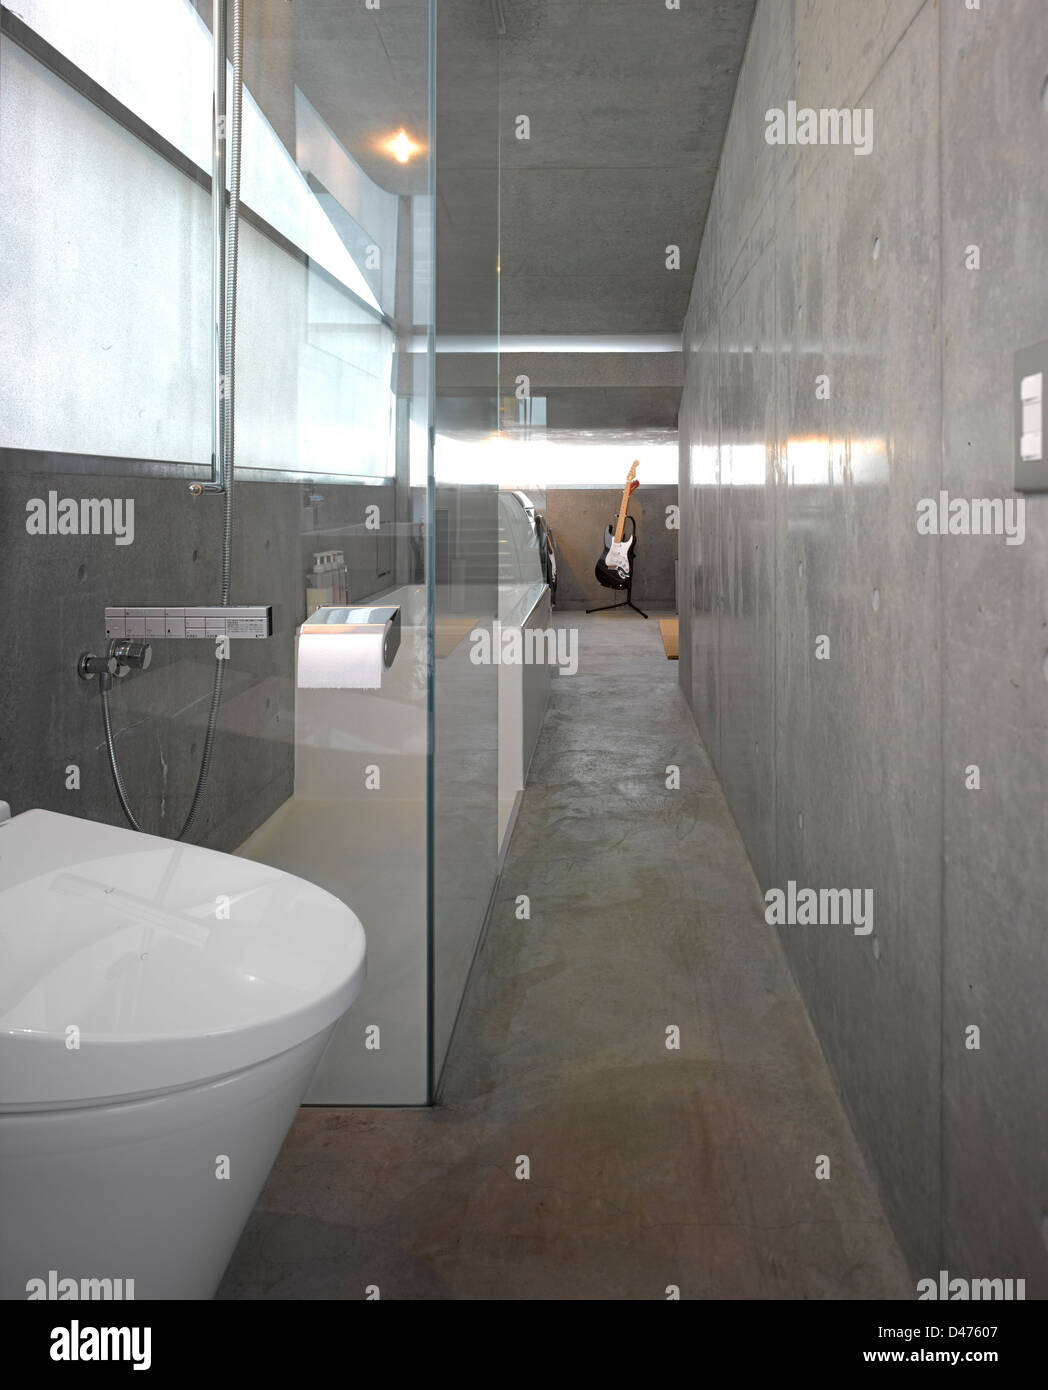 The Mist House, Tokyo, Japan. Architect: TNA, 2012. Basement area showing loo and shower. Stock Photo